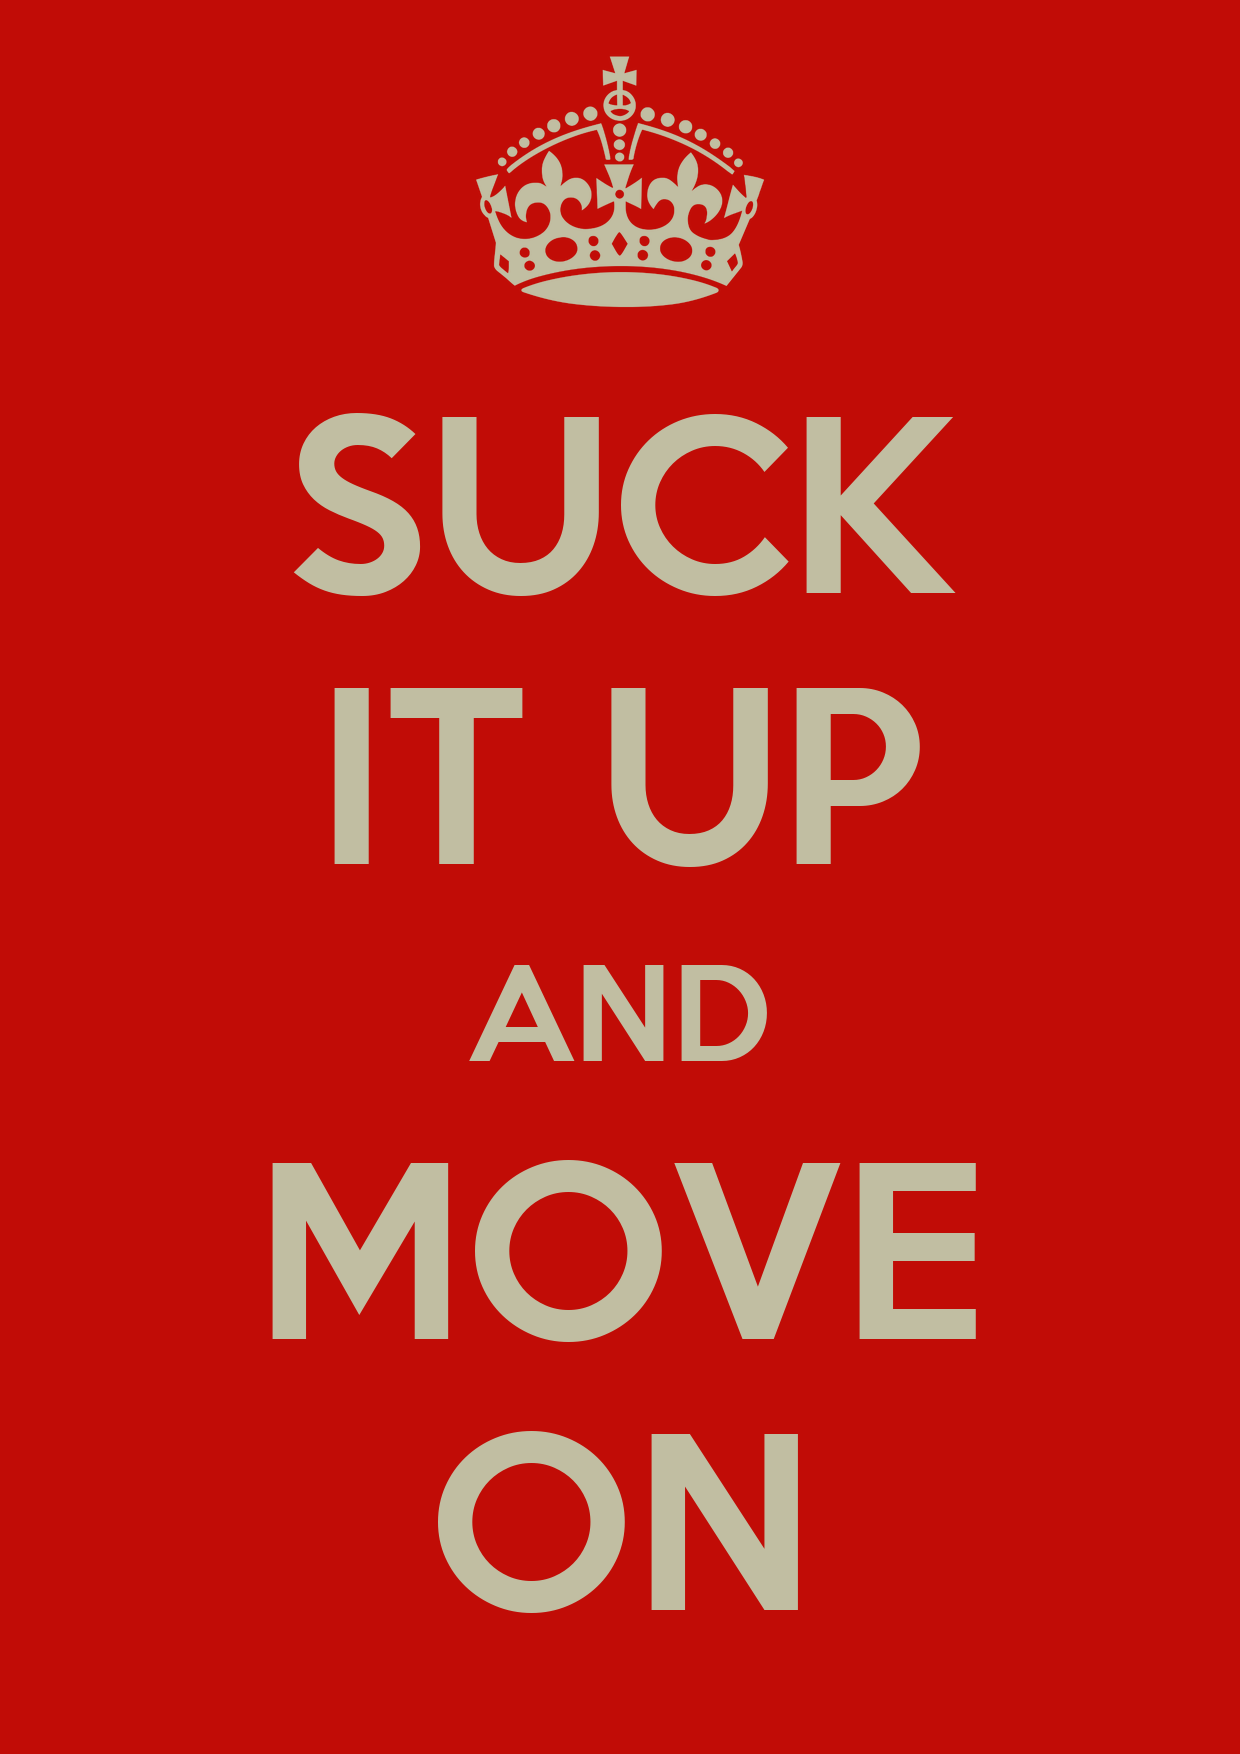 Suck It Up and Move On - Home Facebook